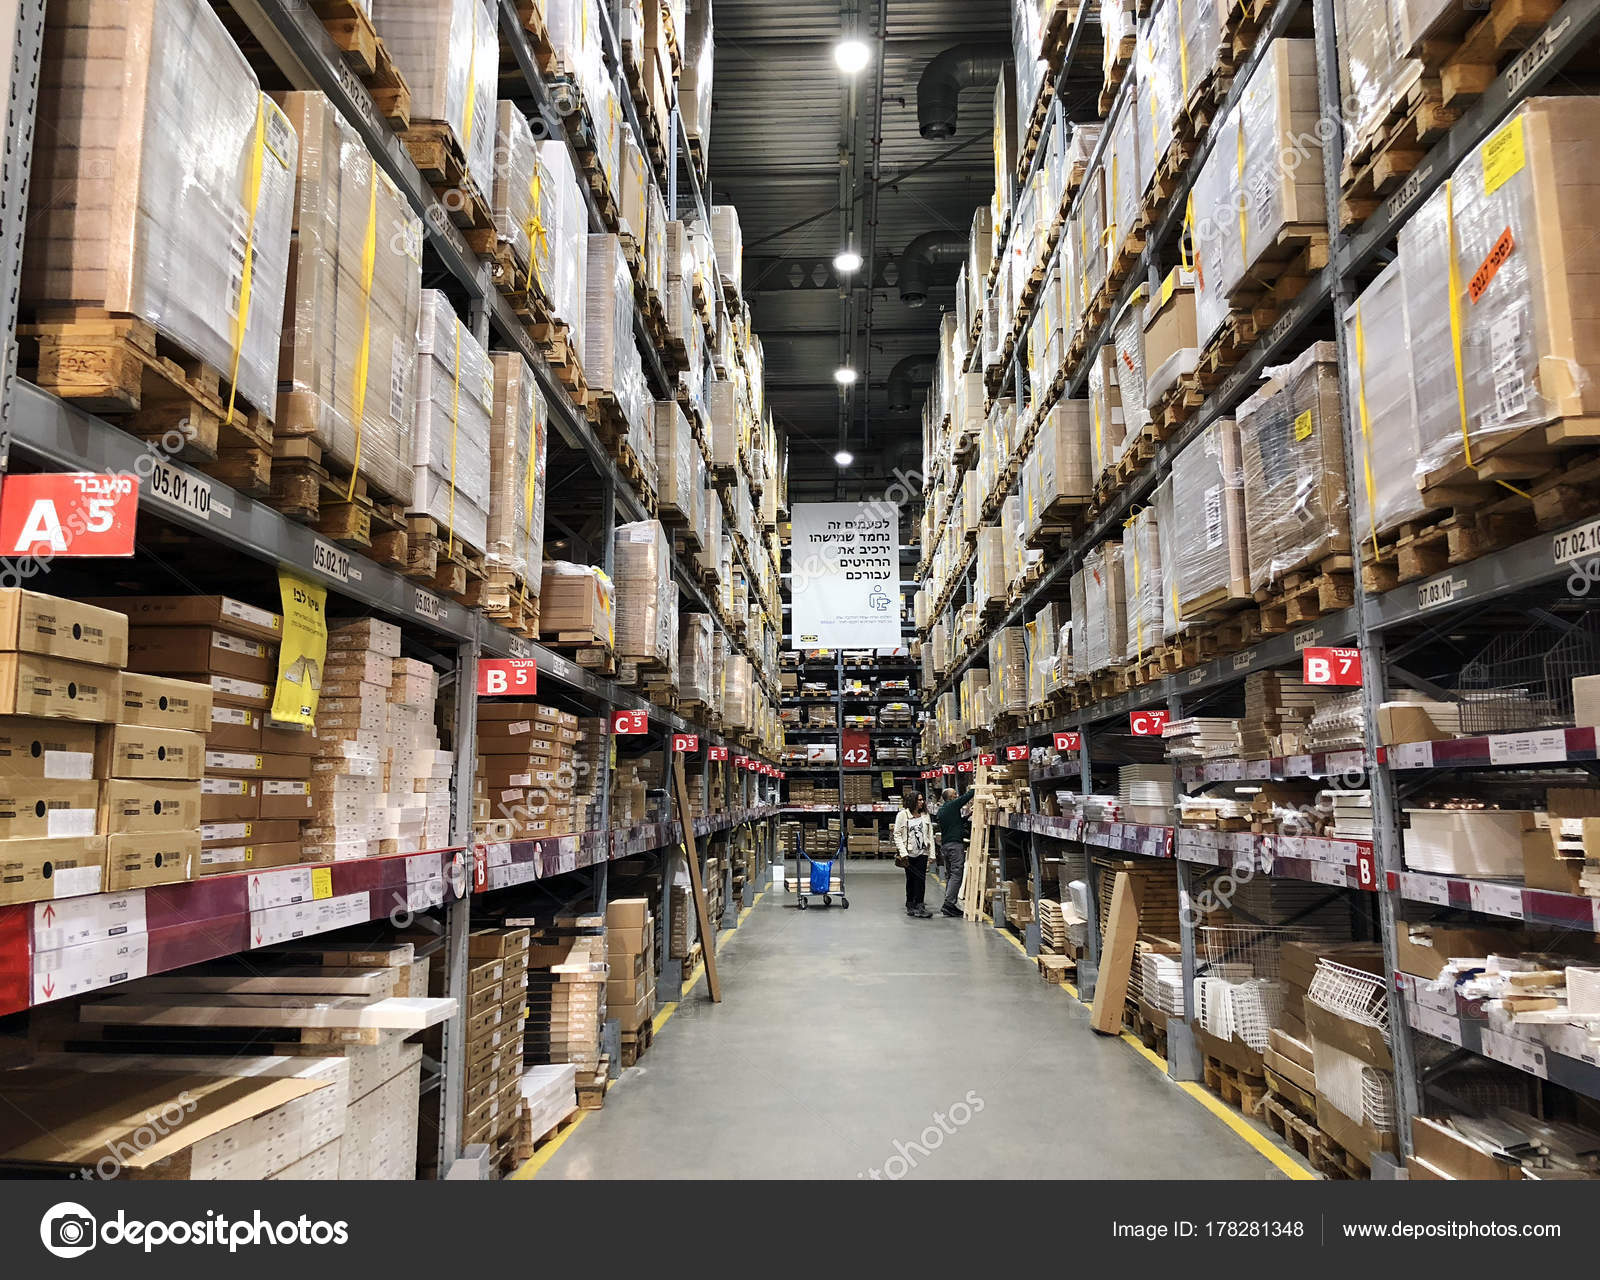 RISHON LE ZION, ISRAEL  DECEMBER 16, 2017: Warehouse Aisle In An IKEA Store.  Founded In 1943, IKEA Is The Worldu0027s Largest Furniture Retailer.